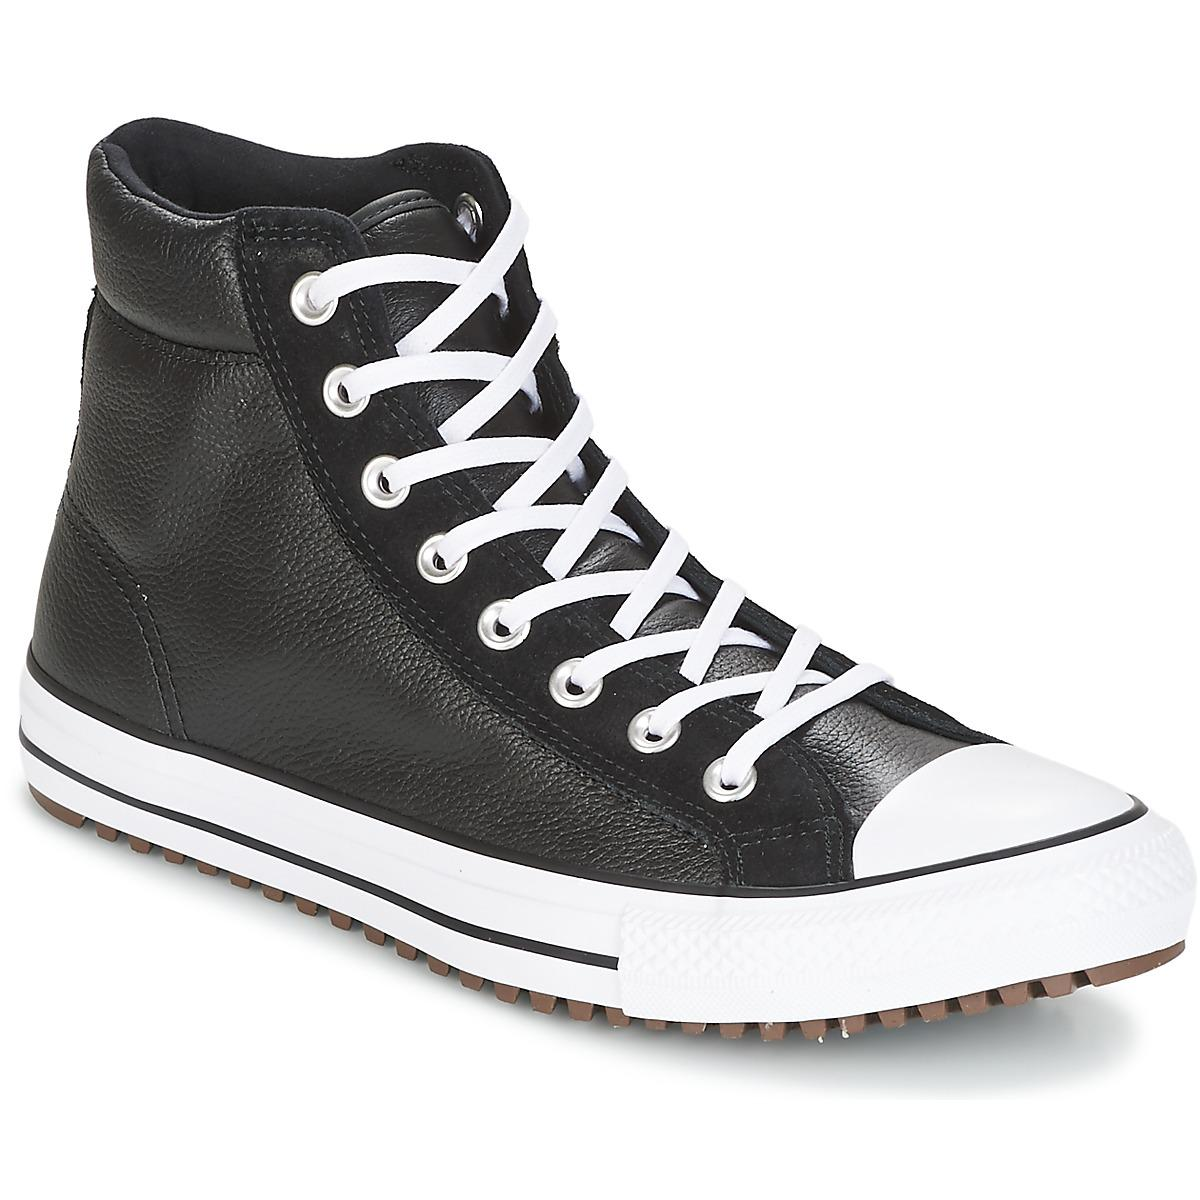 Converse Chuck Taylor All Star Boot Pc Leather And Suede Hi Black ... afe1b2592